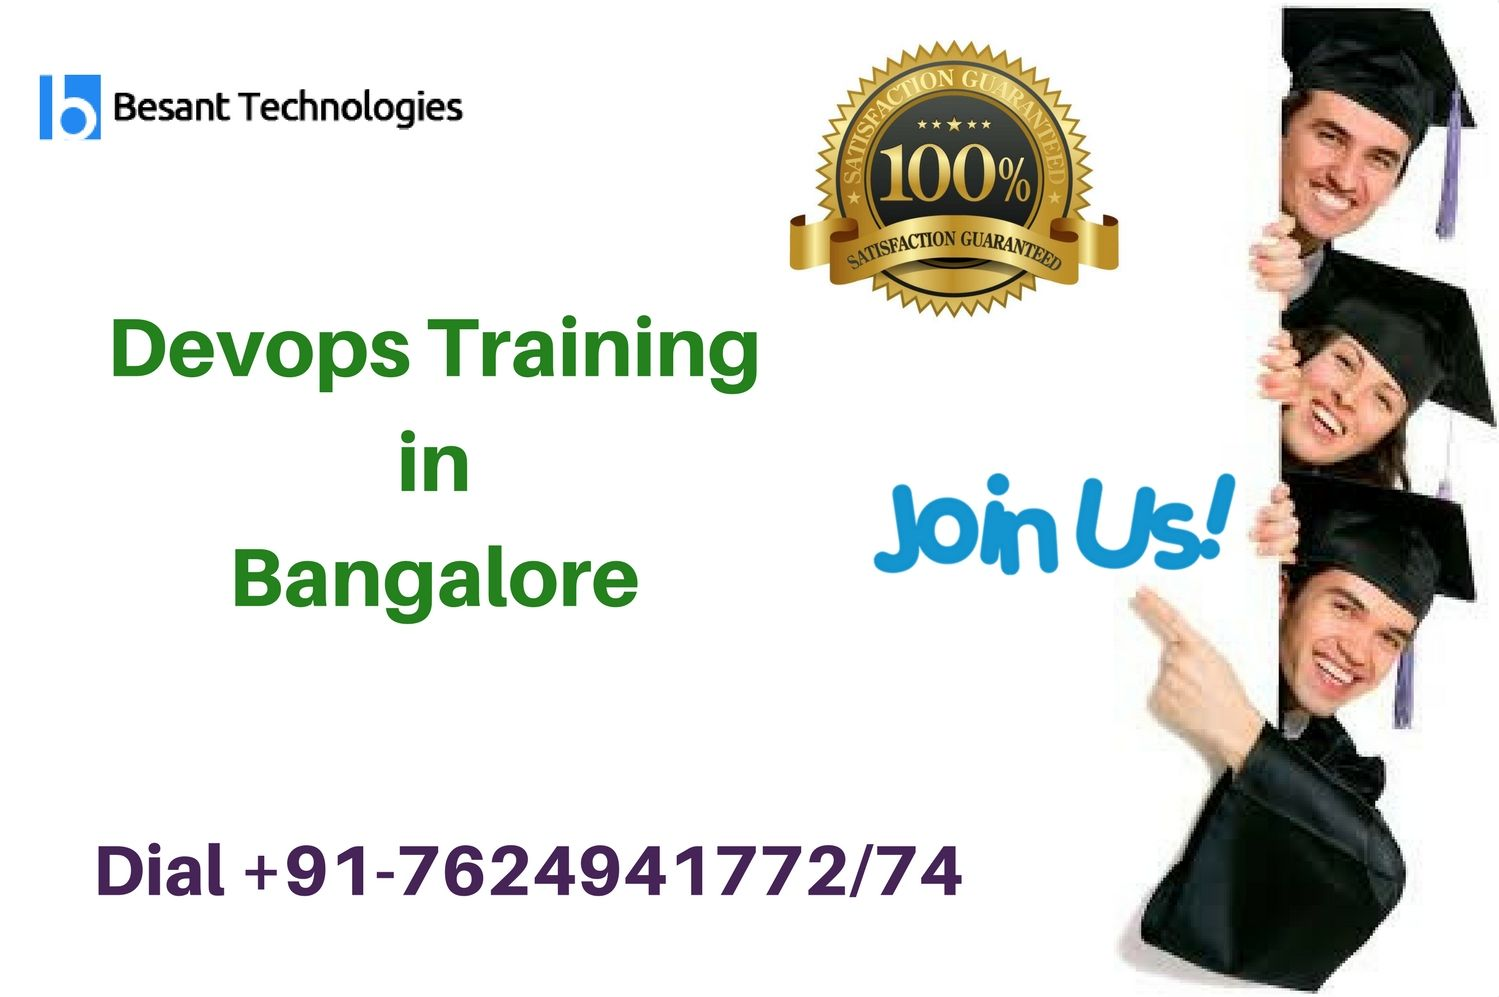 DevOps is a combination of software development and